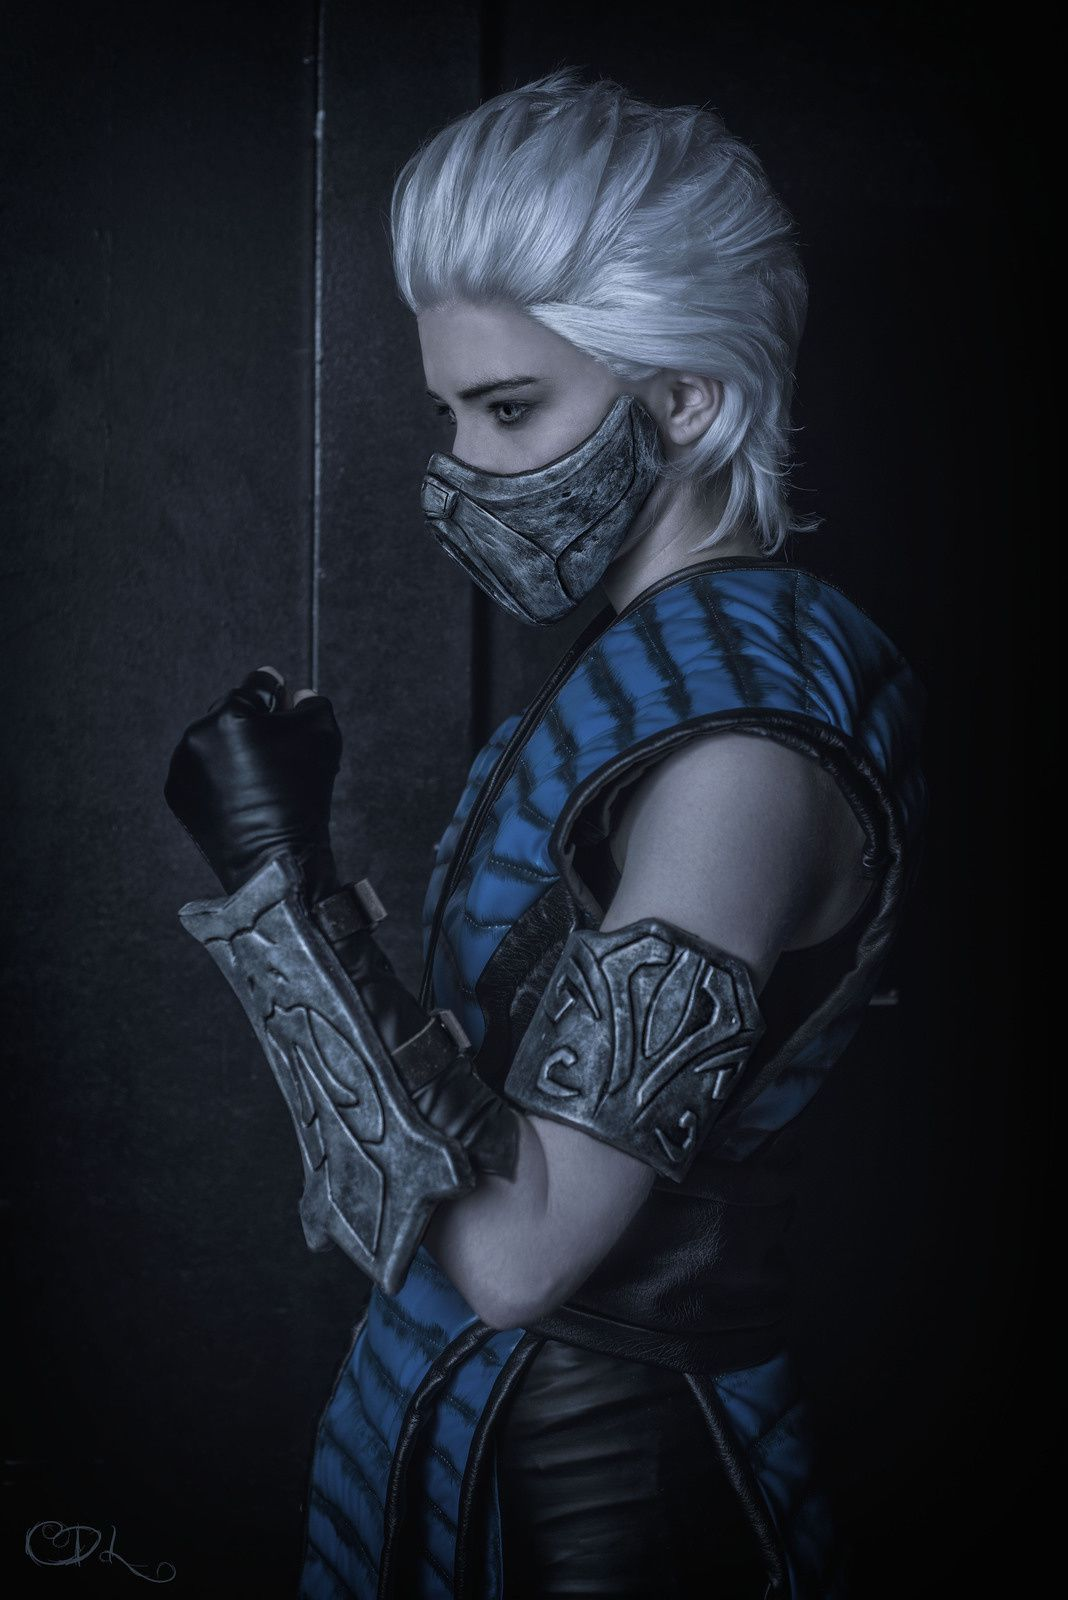 Parle-moi Cosplay #170,5 : Reaver Cosplay